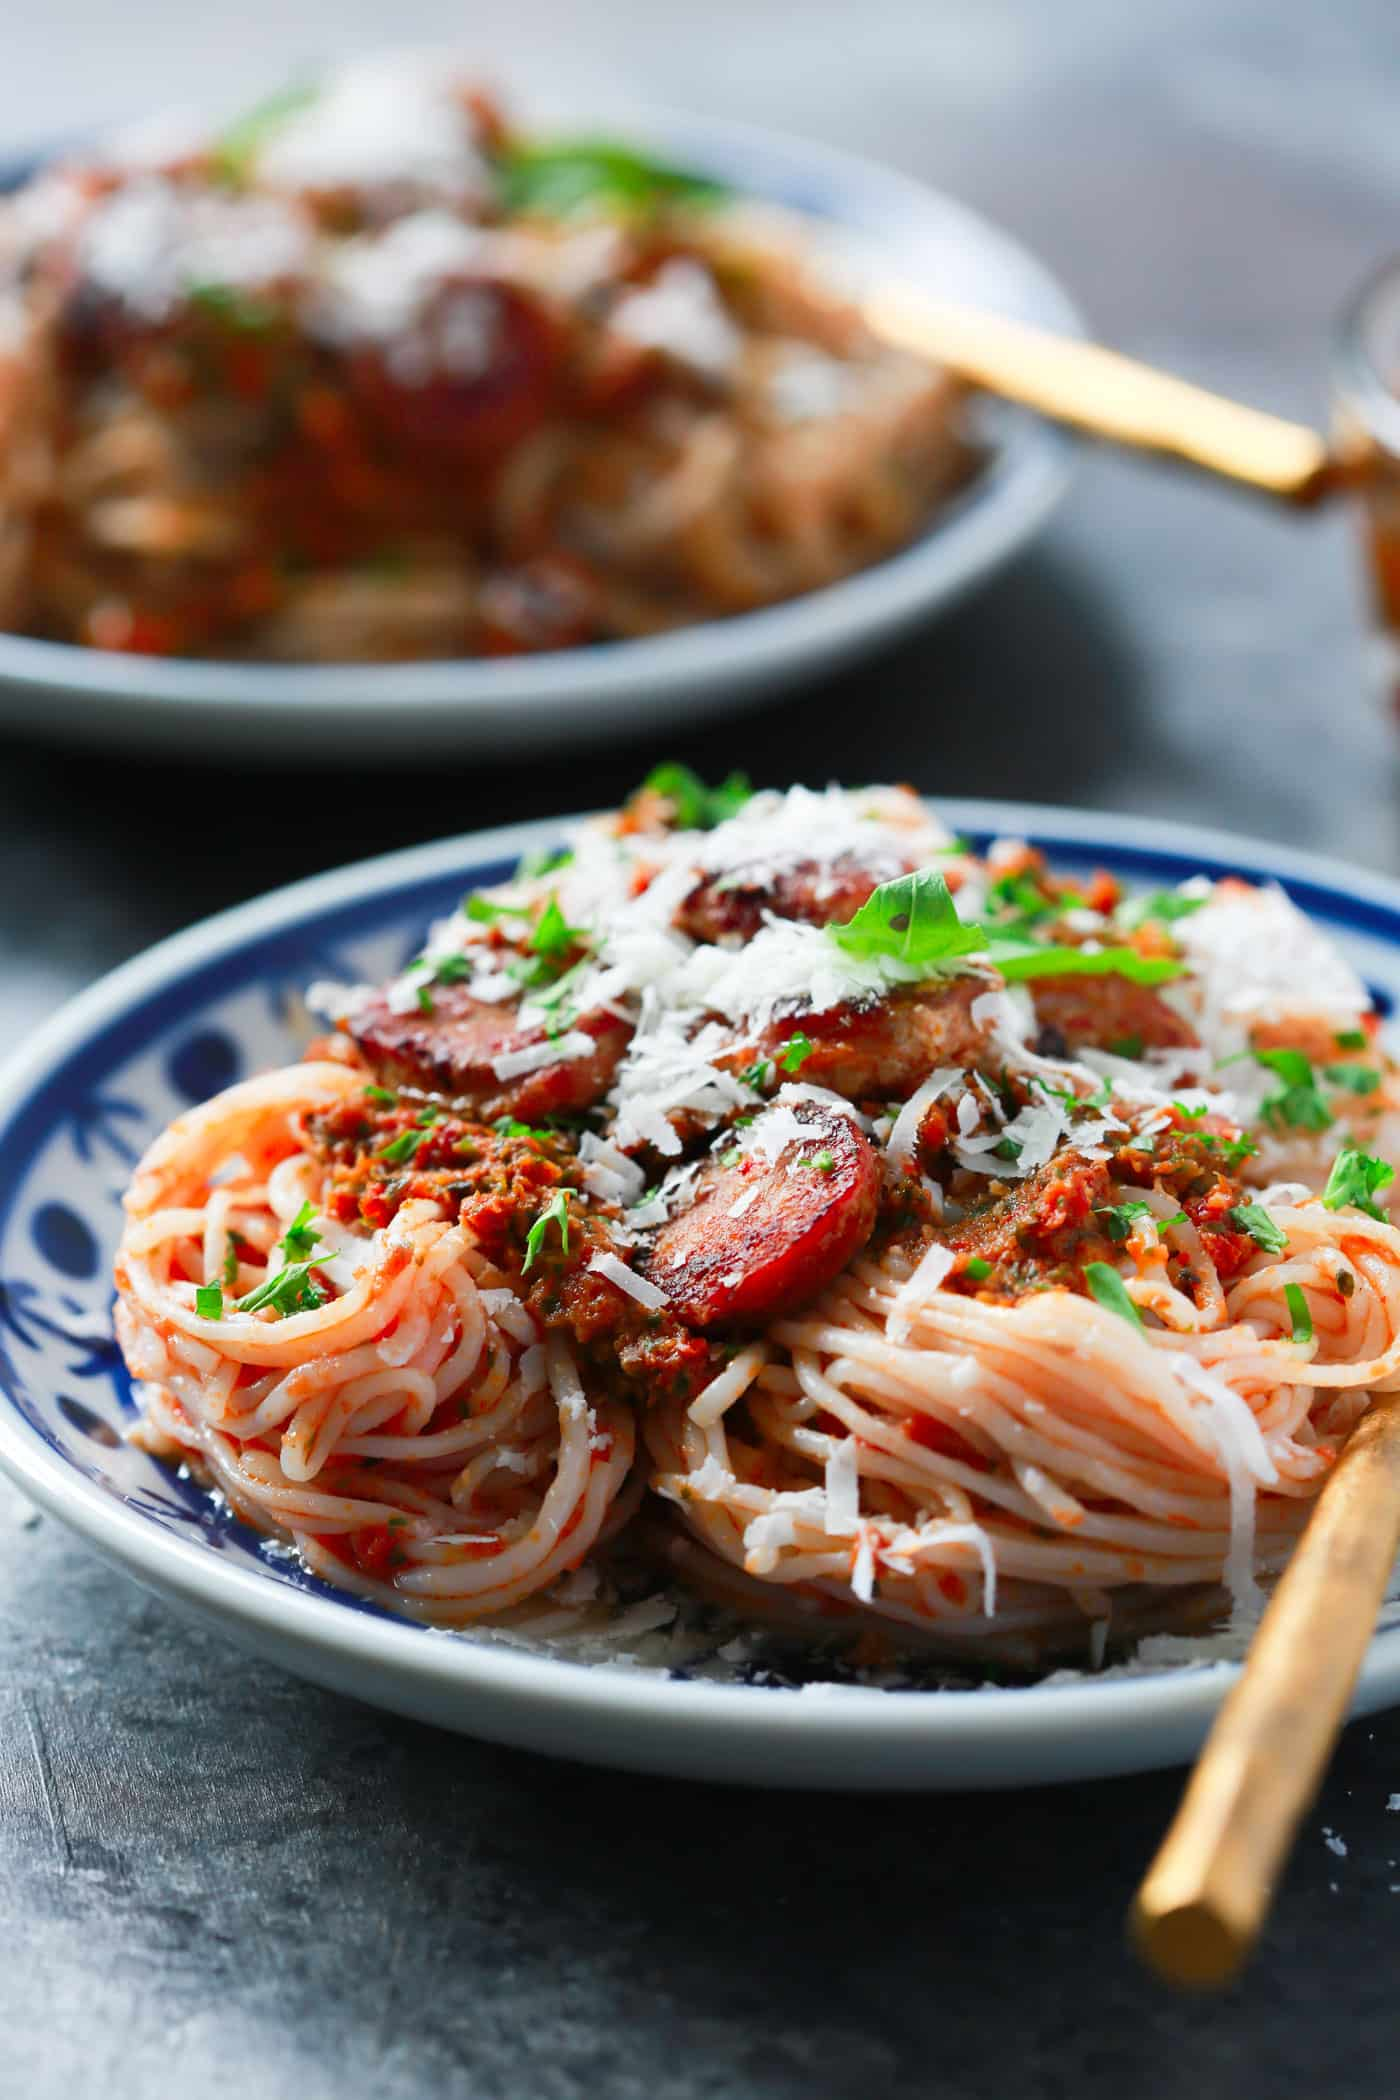 This Italian Sausage Sun-dried Tomato Pesto Pasta is loaded with flavour. And you won't believe this recipe is actually low-carb and gluten-free!